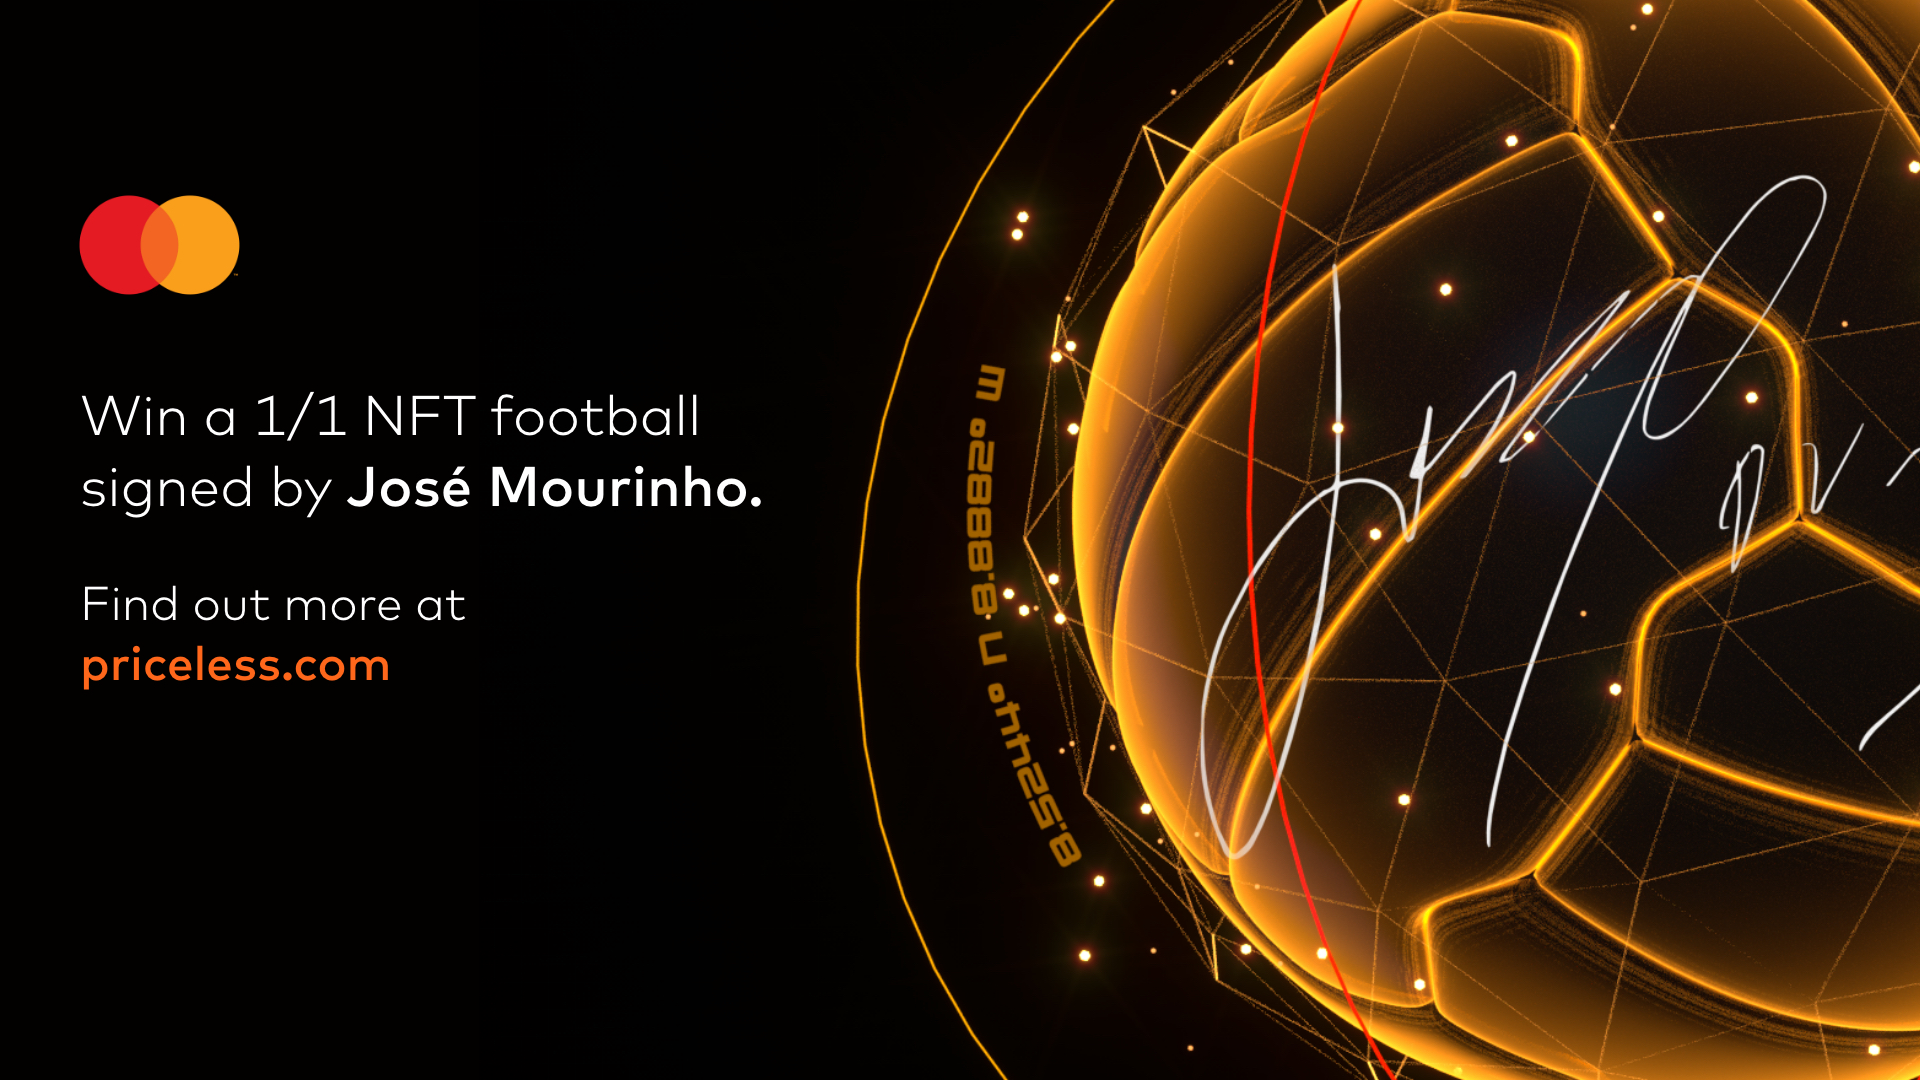 Win a Jose Mourinho NFT created by Mastercard… with a priceless surprise inside